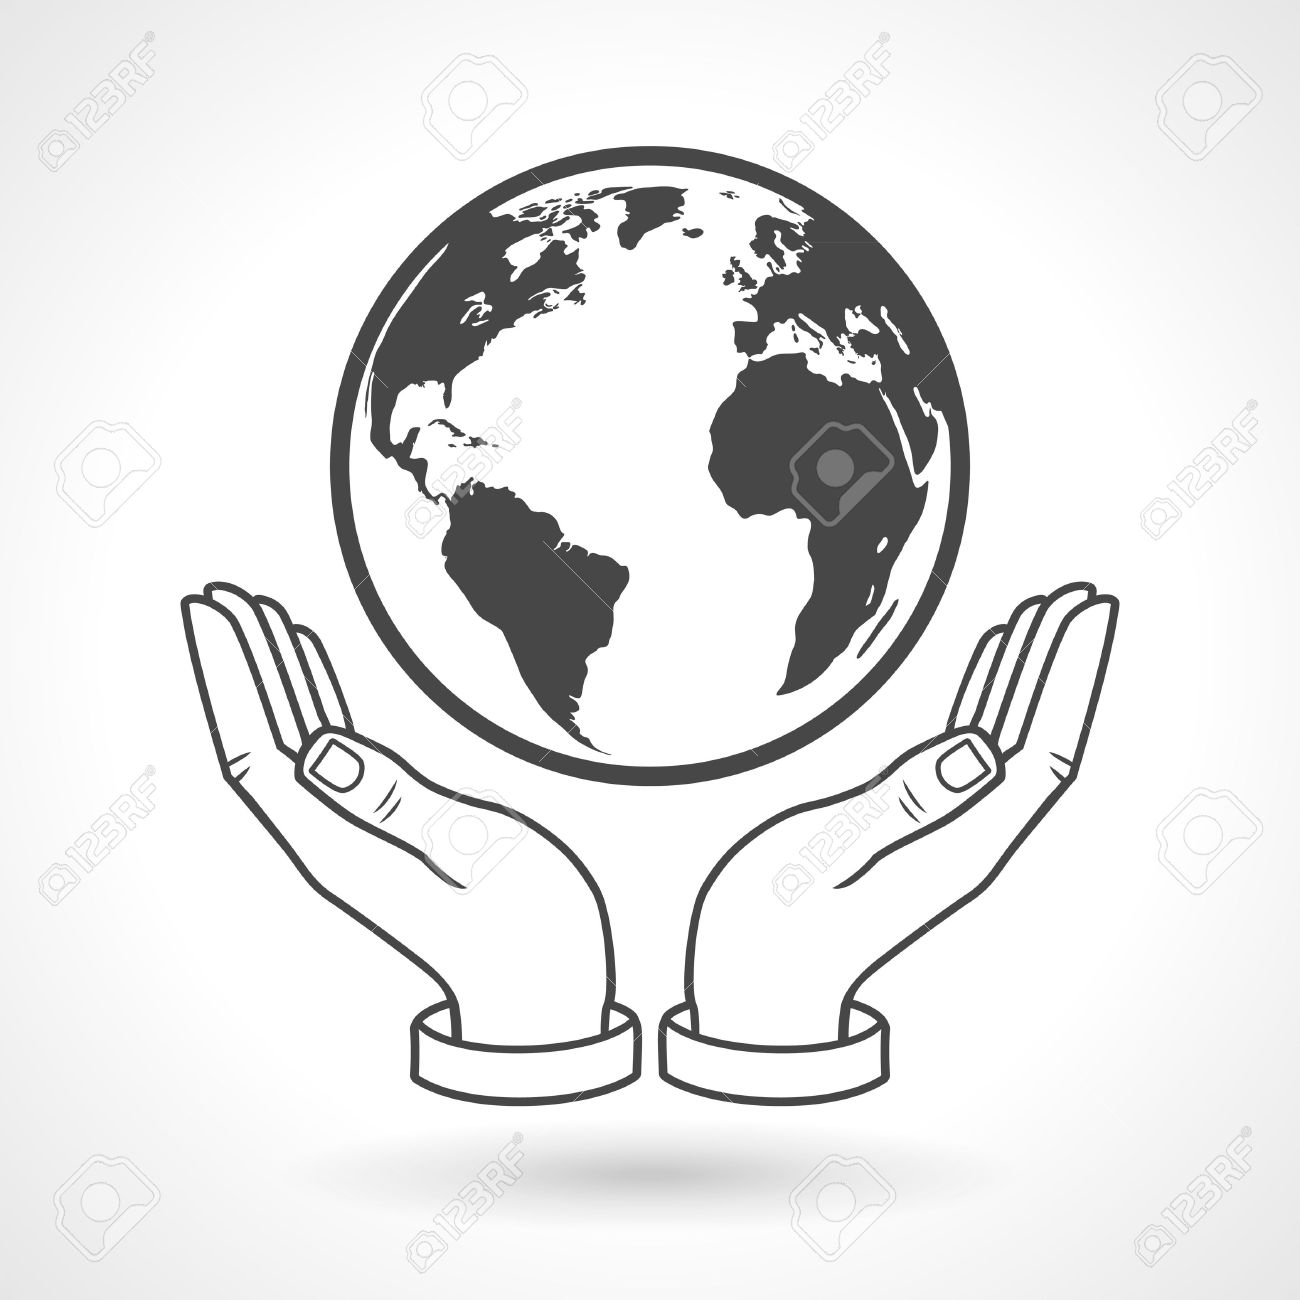 1300x1300 Hands Holding Earth Globe Symbol Royalty Free Cliparts, Vectors